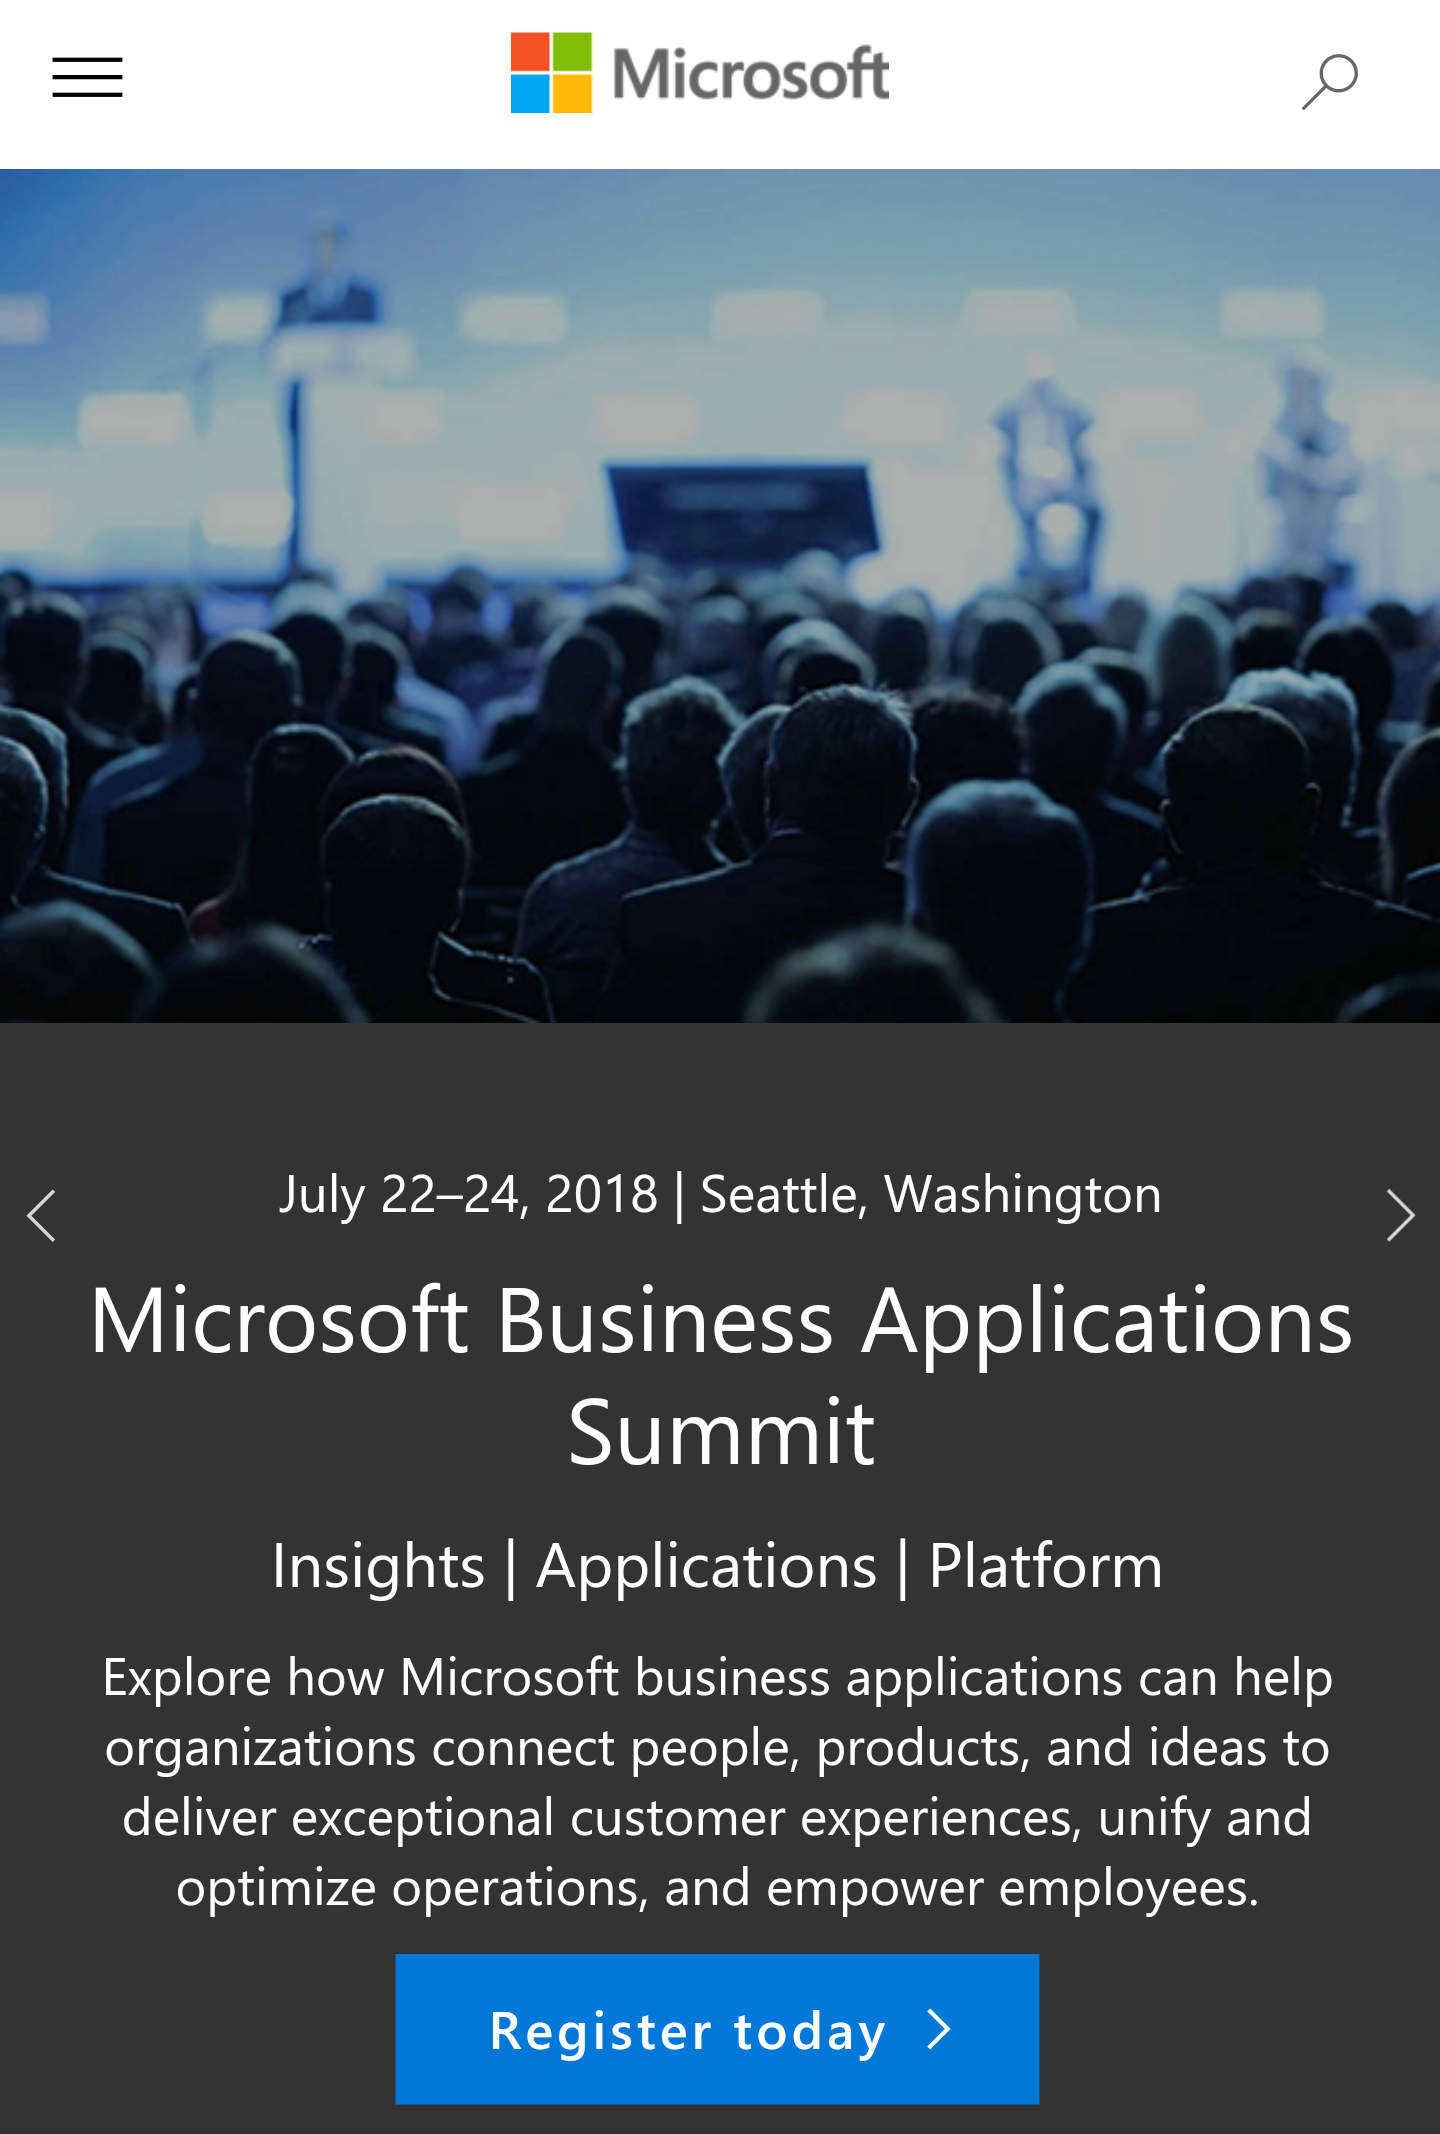 MS Business Applications Summit - July 22 - 24 in Seattle - Connect people, products and ideas. (Microsoft)